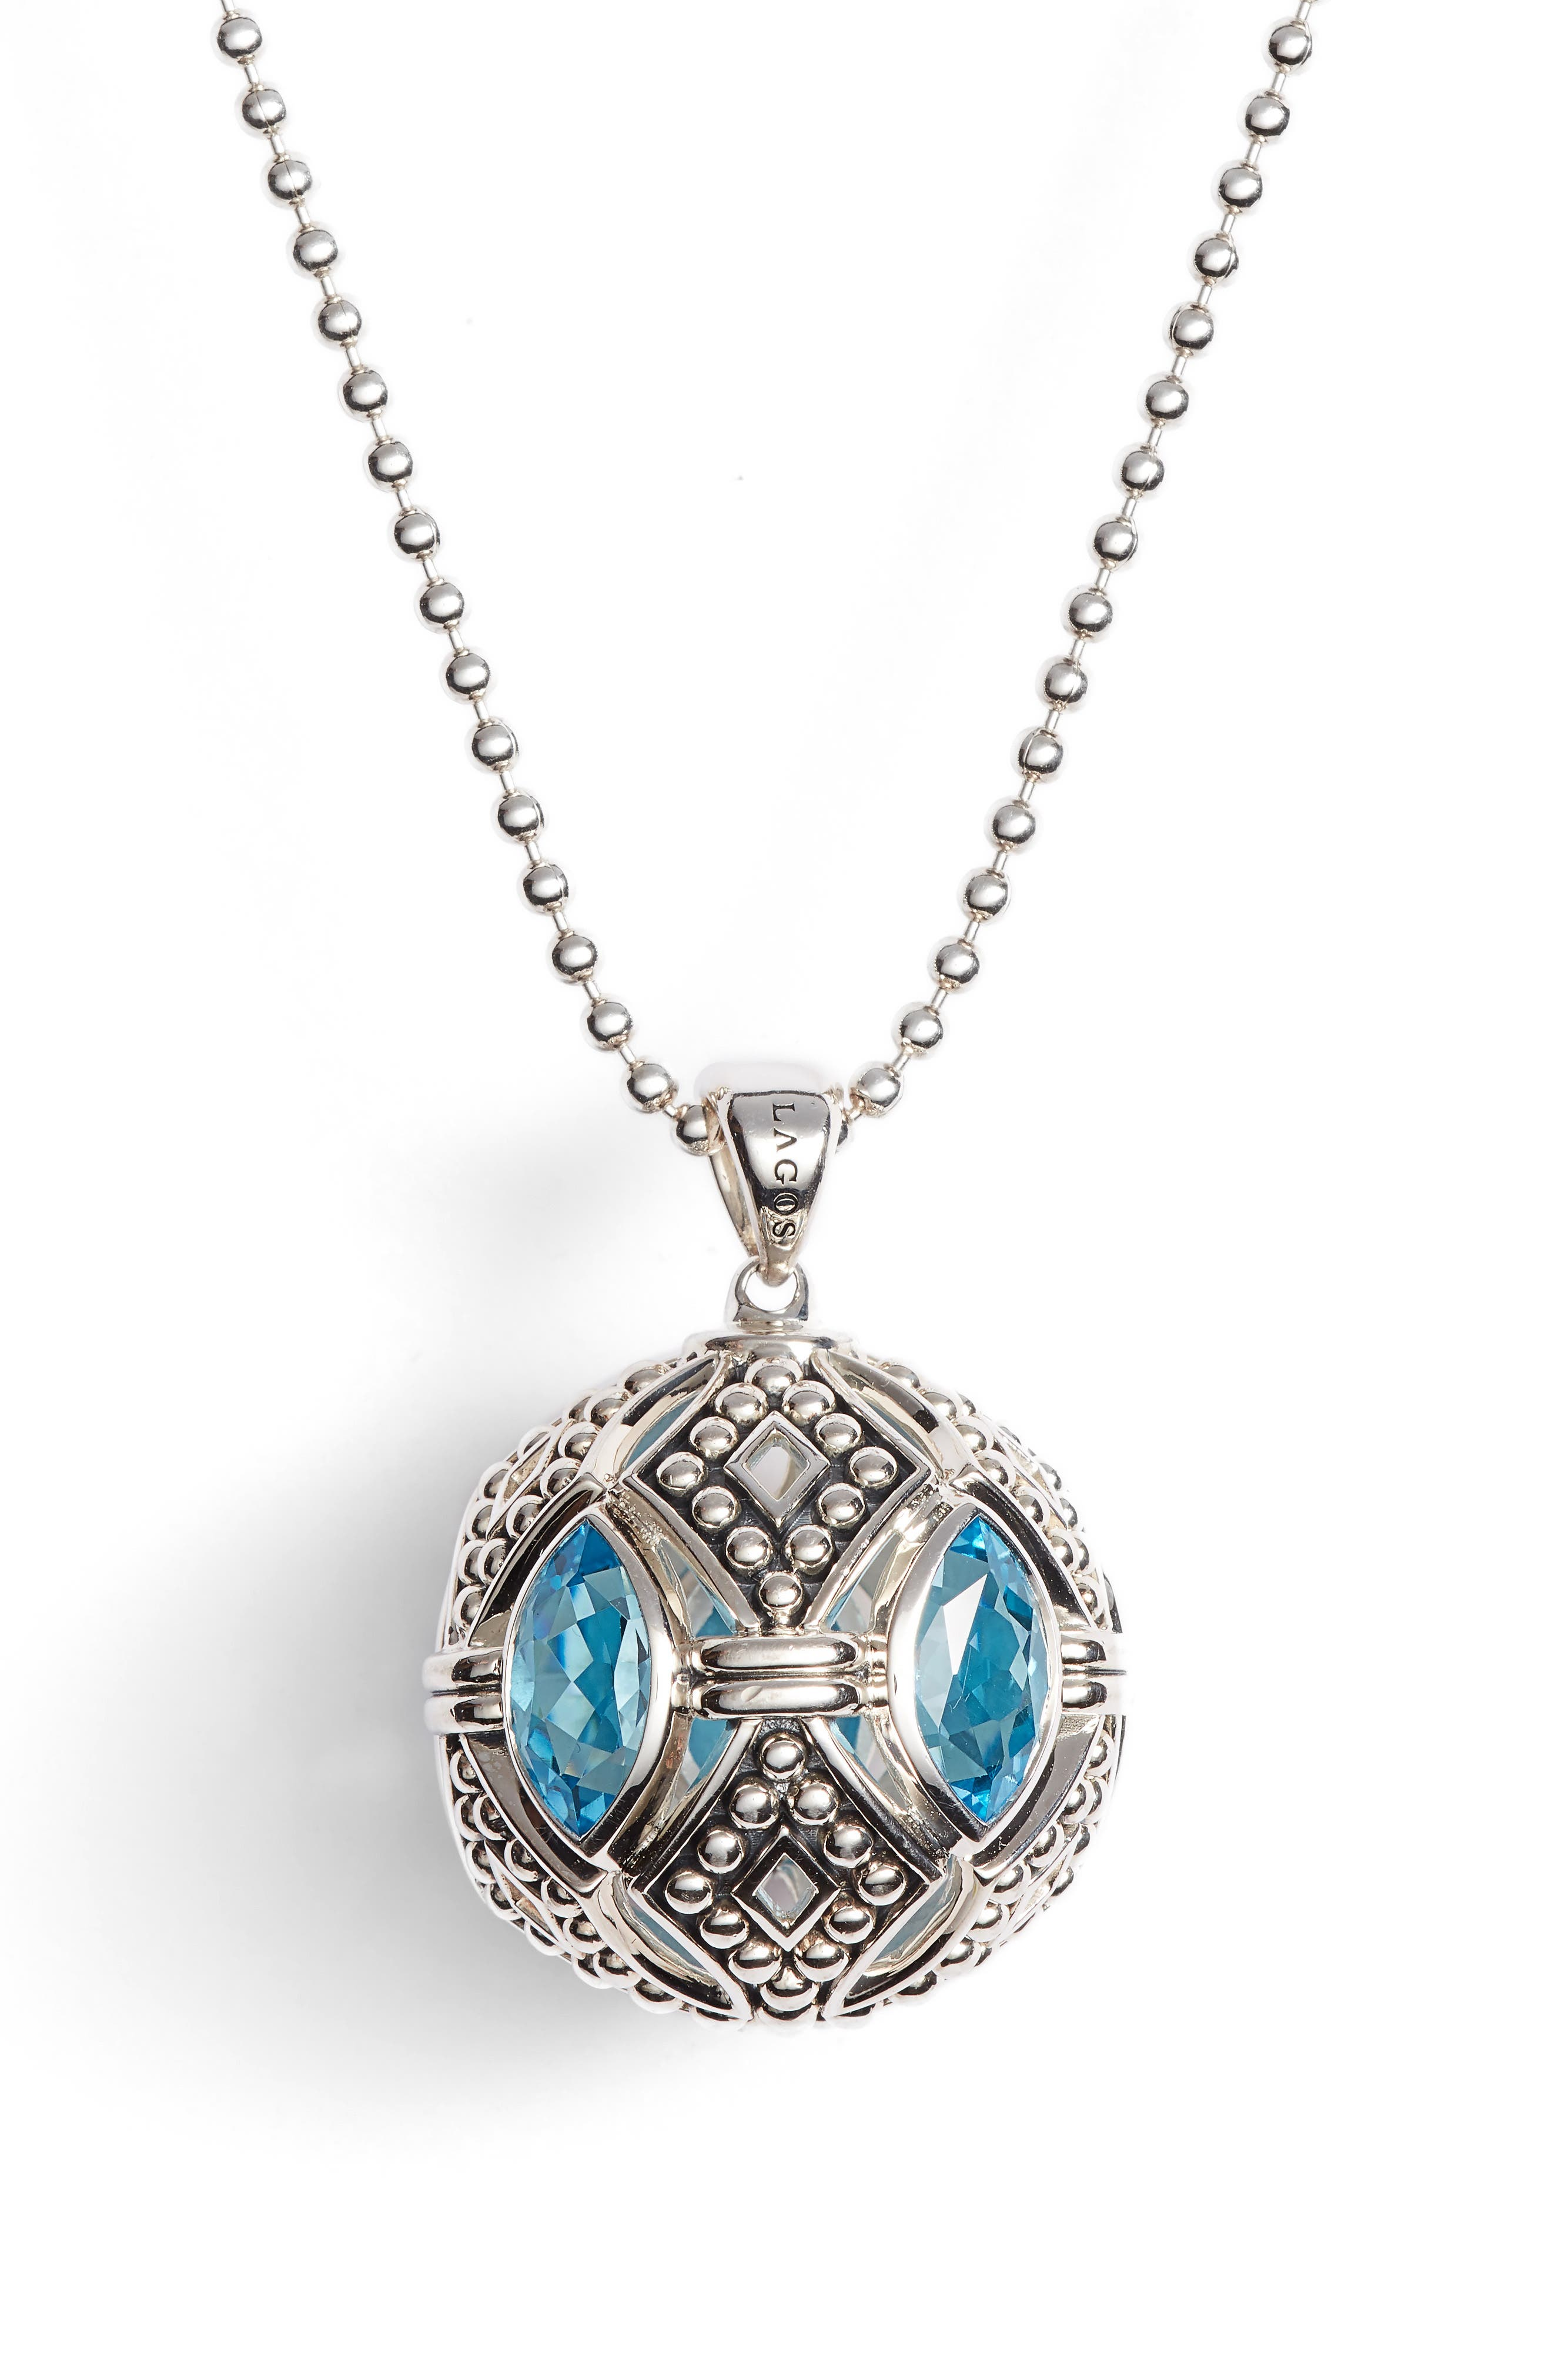 Main Image - Lagos Signature Gifts Marquee Ball Pendant Necklace